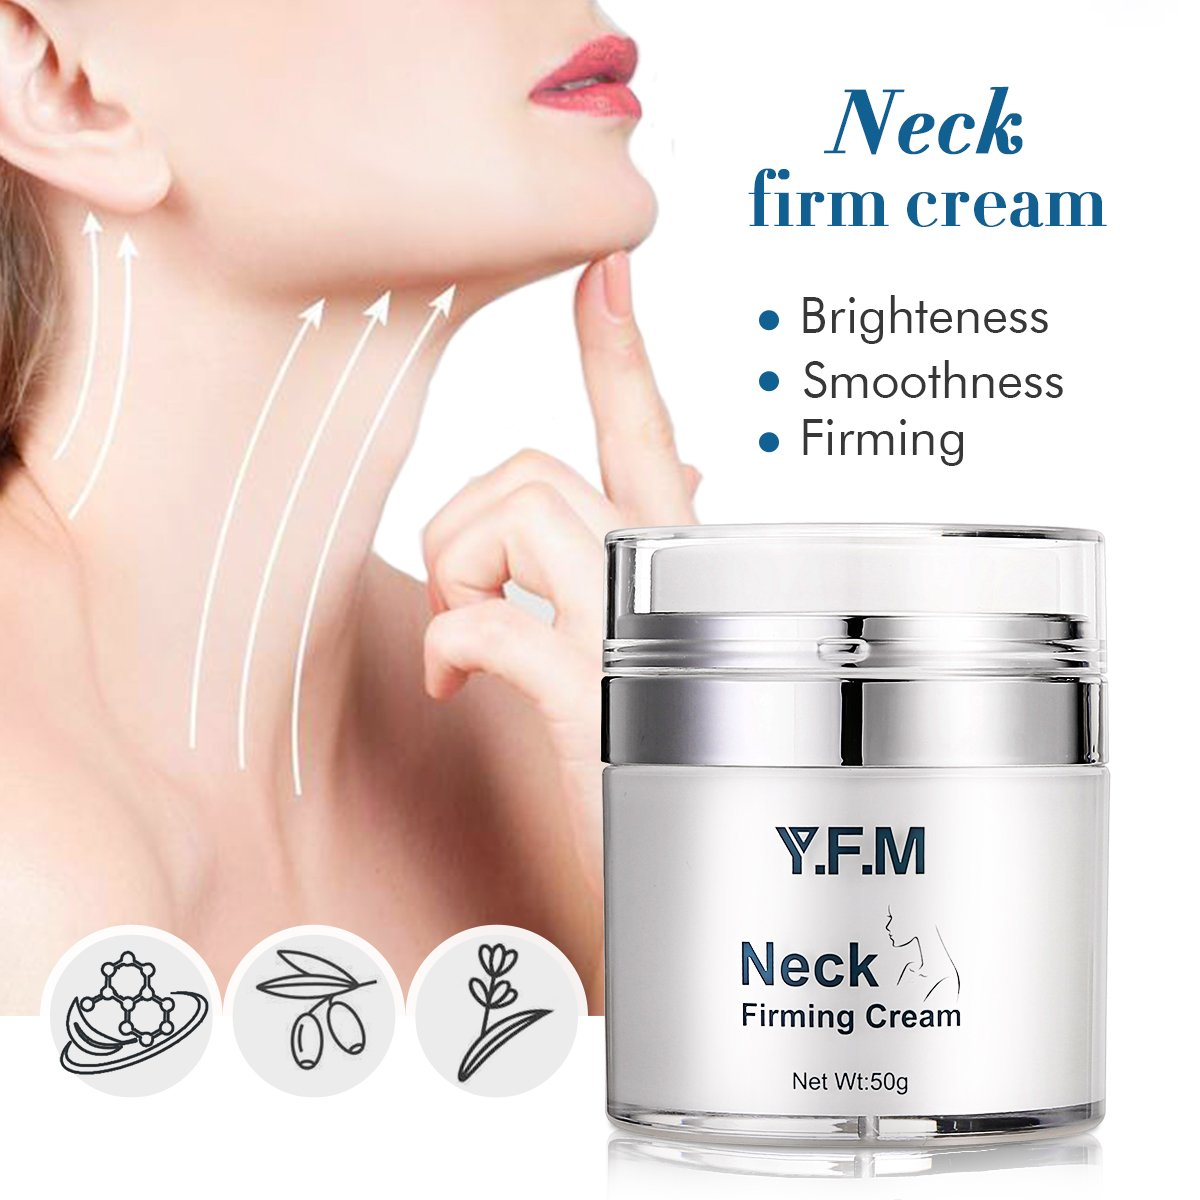 Neck Firming Cream, Y.F.M Anti Aging Moisturizer for Neck, Skin Tightening & Lifting Cream, Advanced Anti-wrinkle Complexes, Work on Loose, Wrinkeld and Sagging Skin Luckyfine